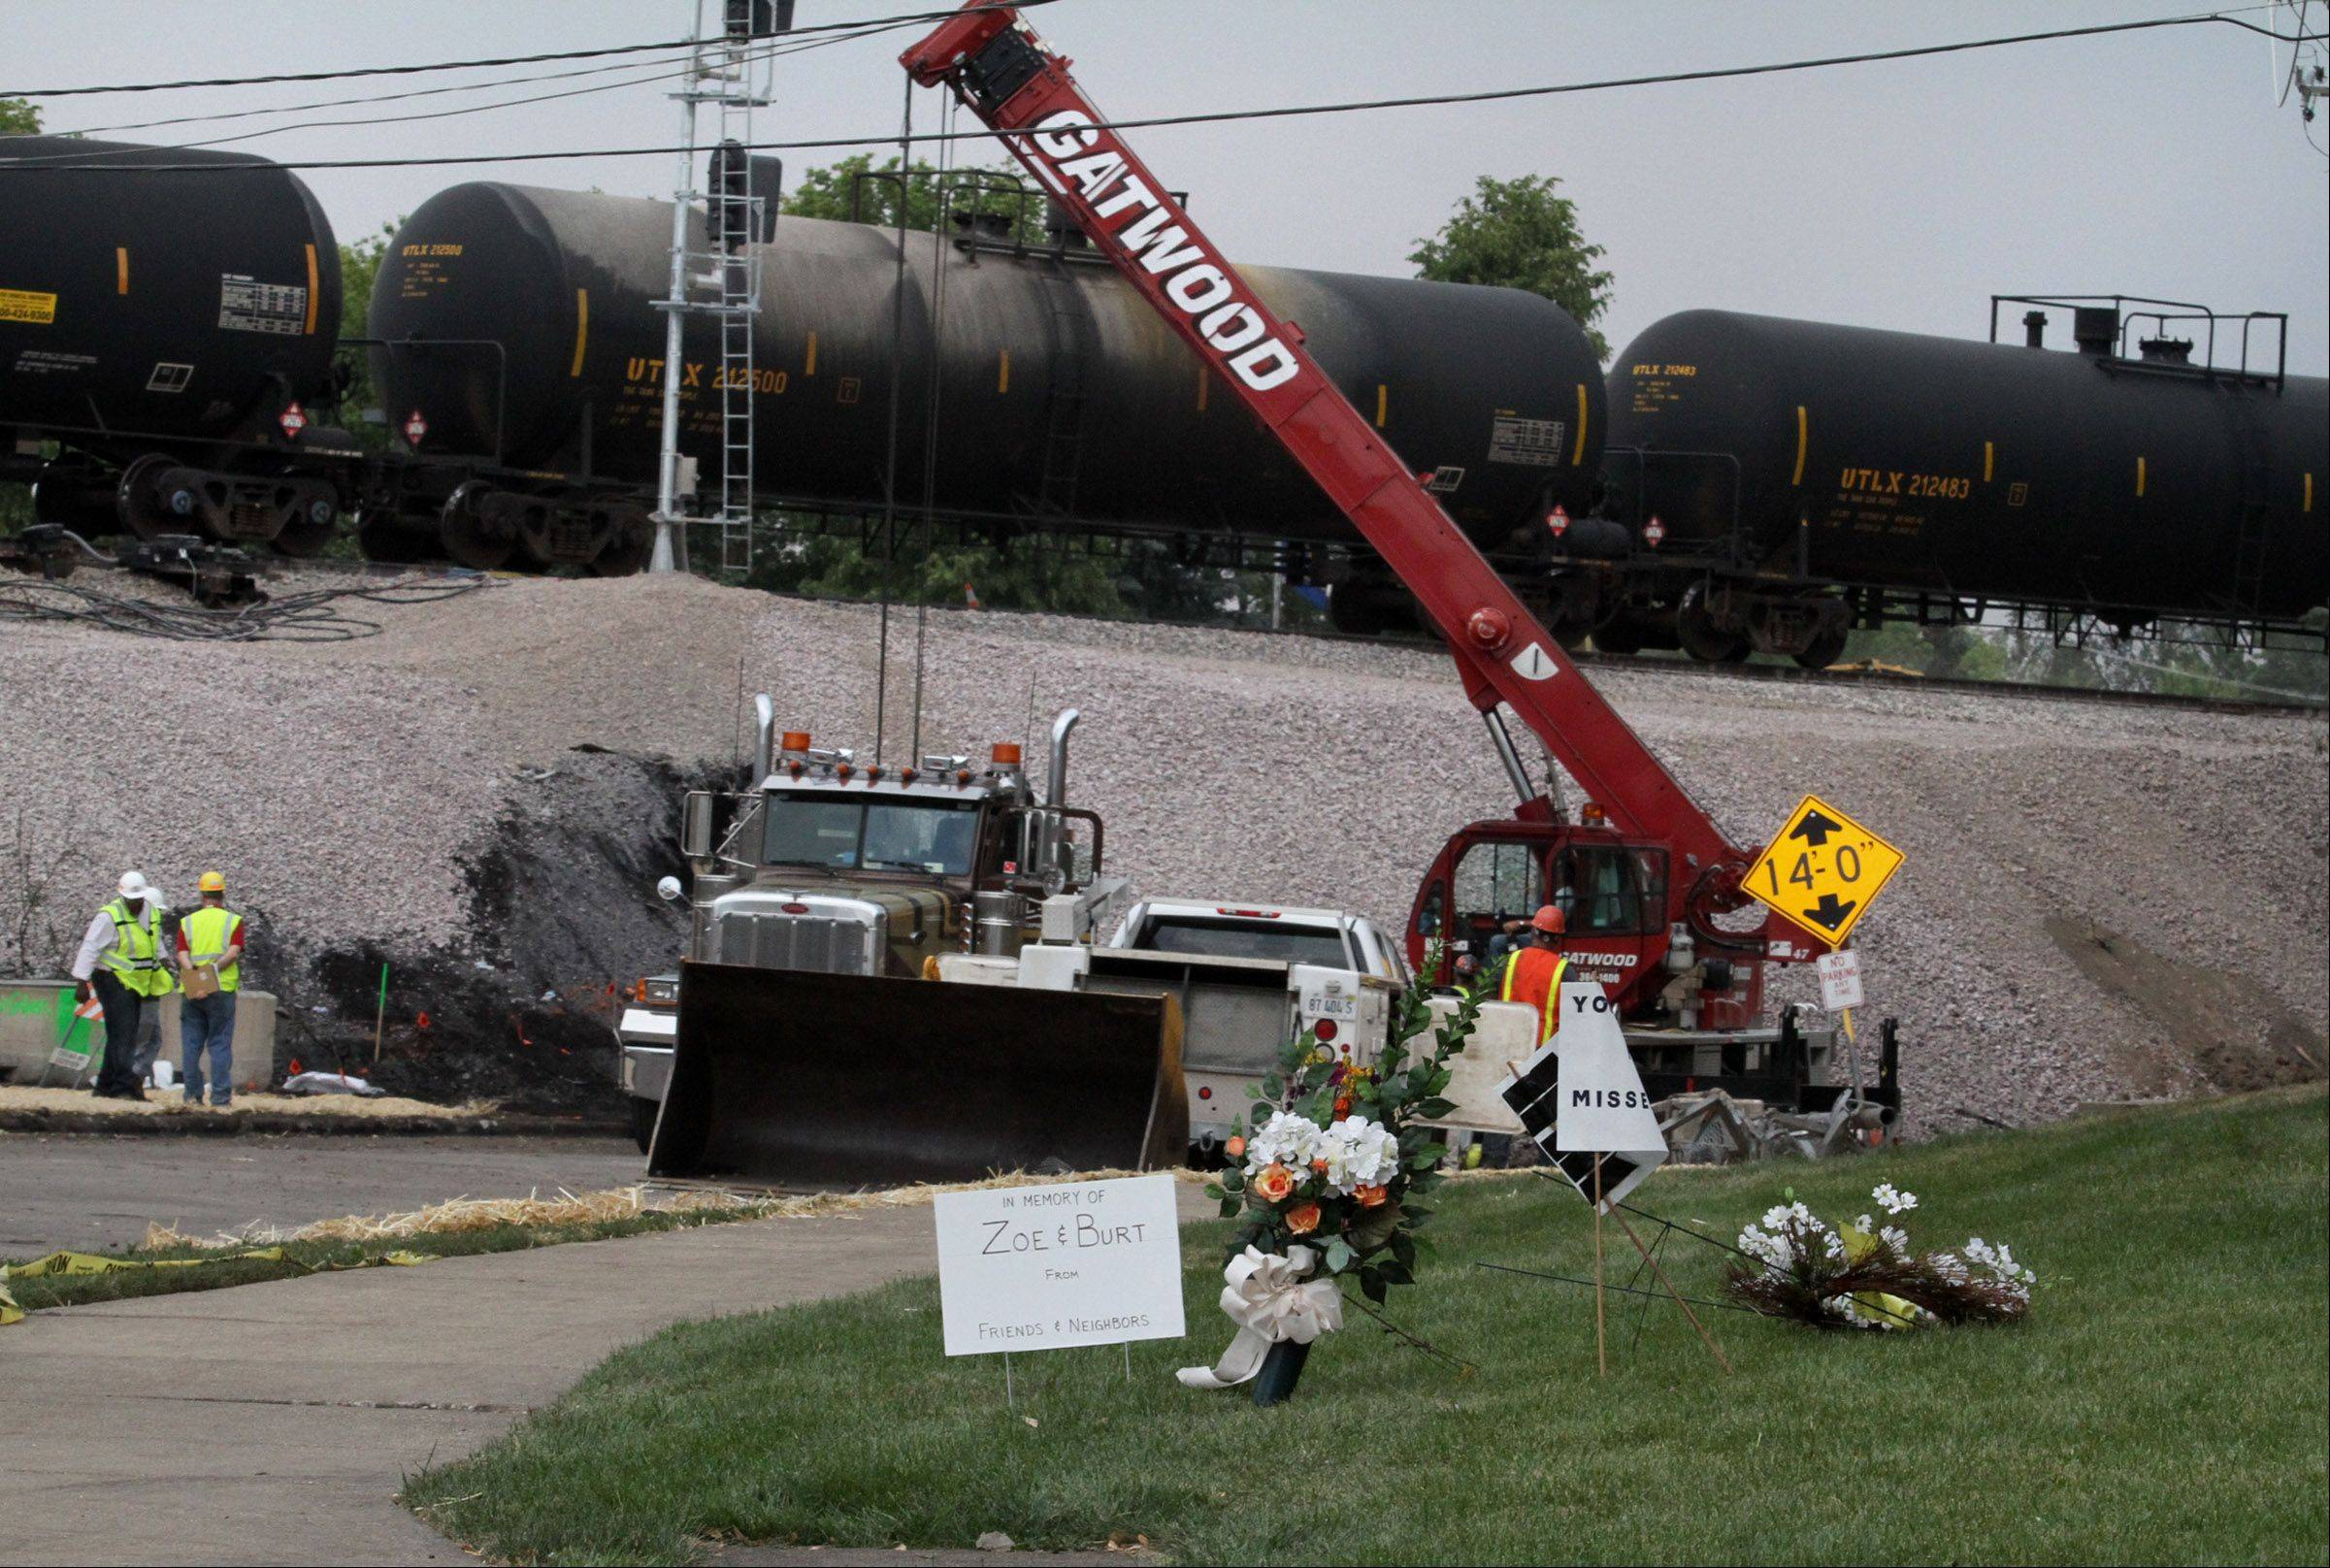 Temporary track carries trains around the Glenview site of a derailment that collapsed a railroad bridge and killed Burton and Zorine Lindner.